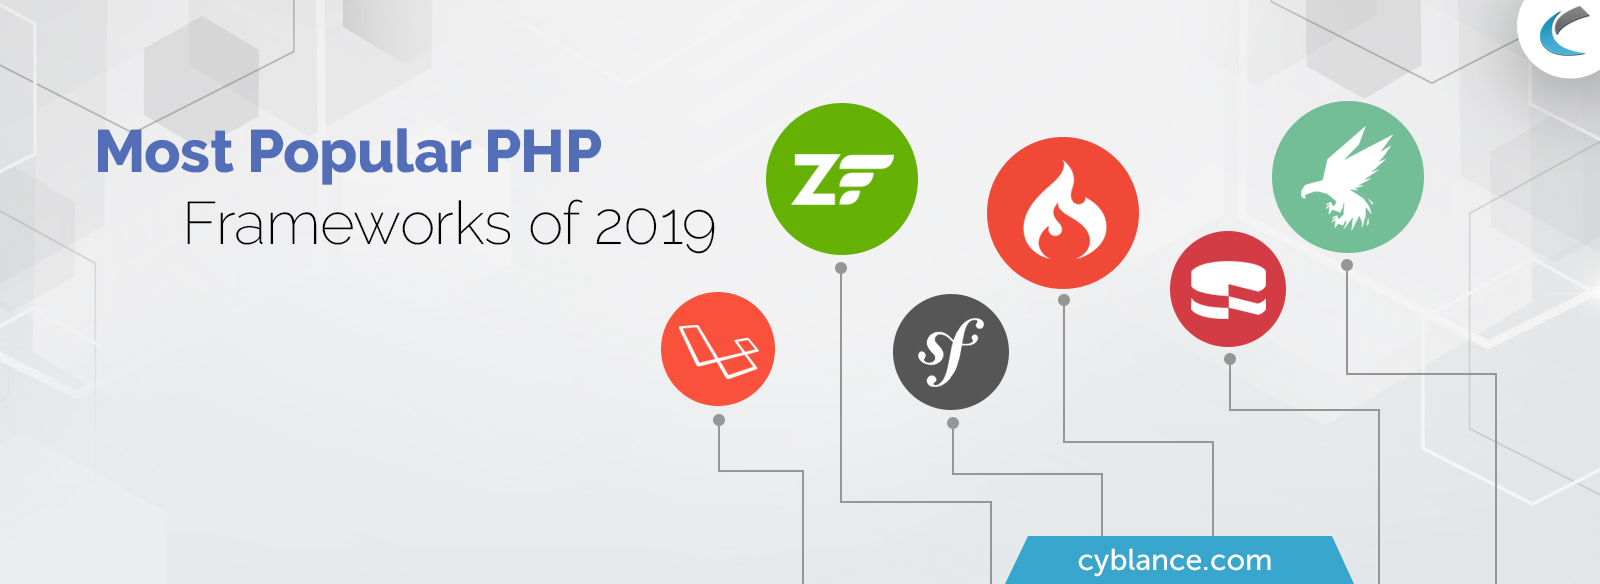 Most Popular PHP frameworks of 2019 and their comparison